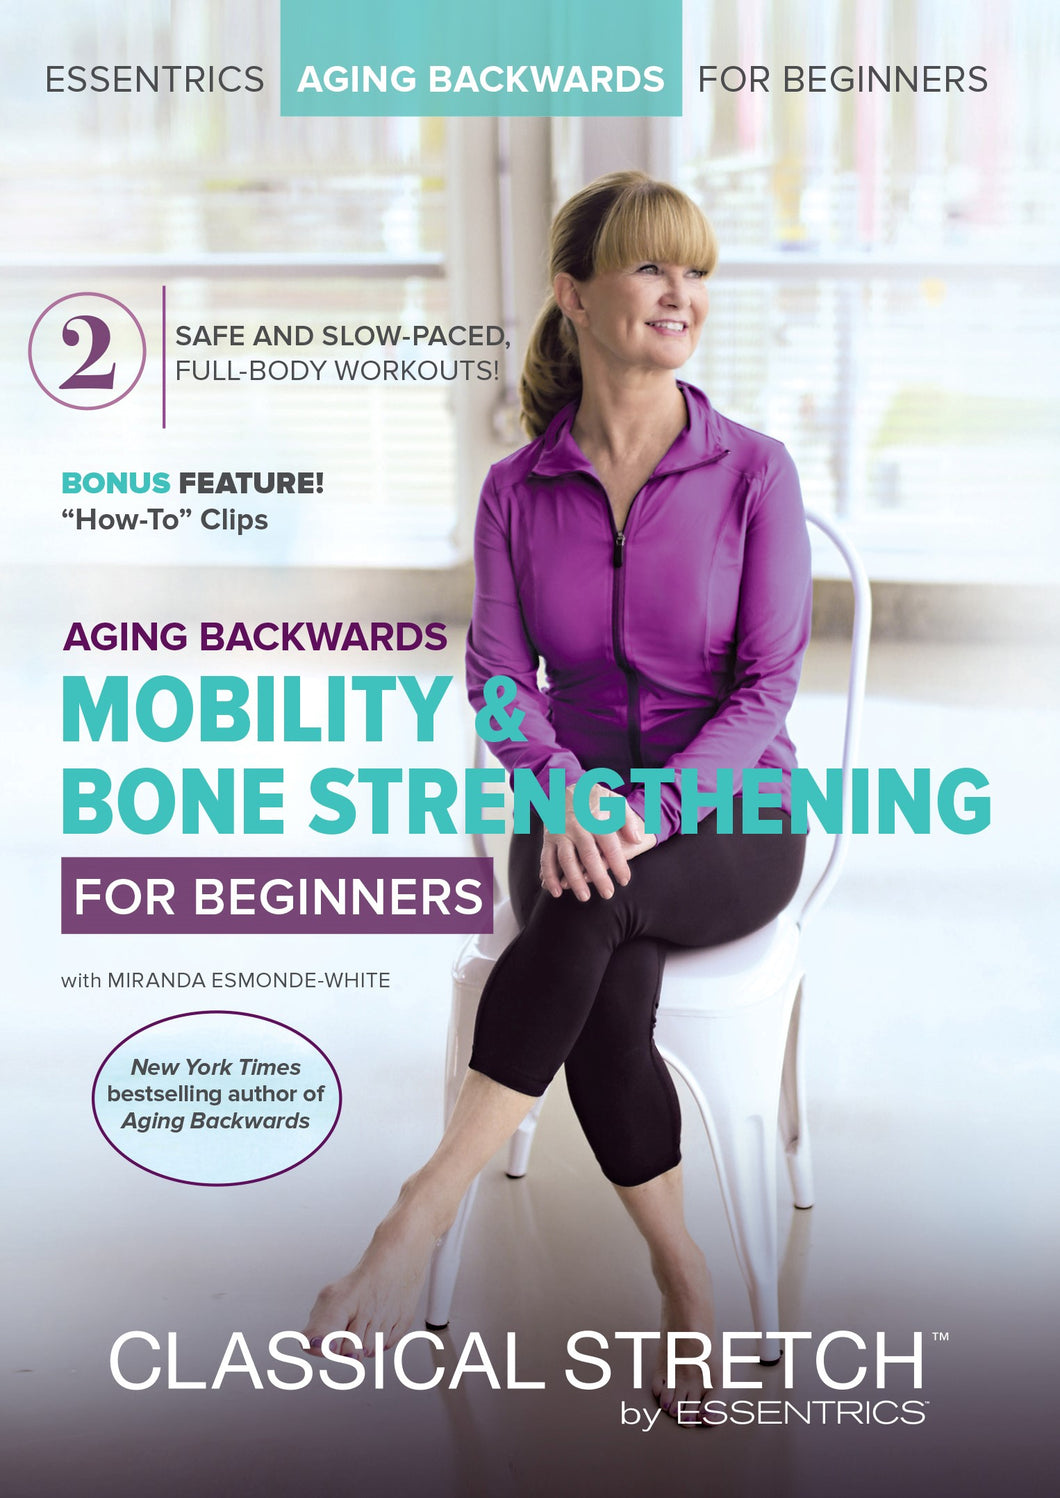 Classical Stretch Age Reversing Workouts for Beginners: Mobility and Bone Strengthening DVD - Aydenns